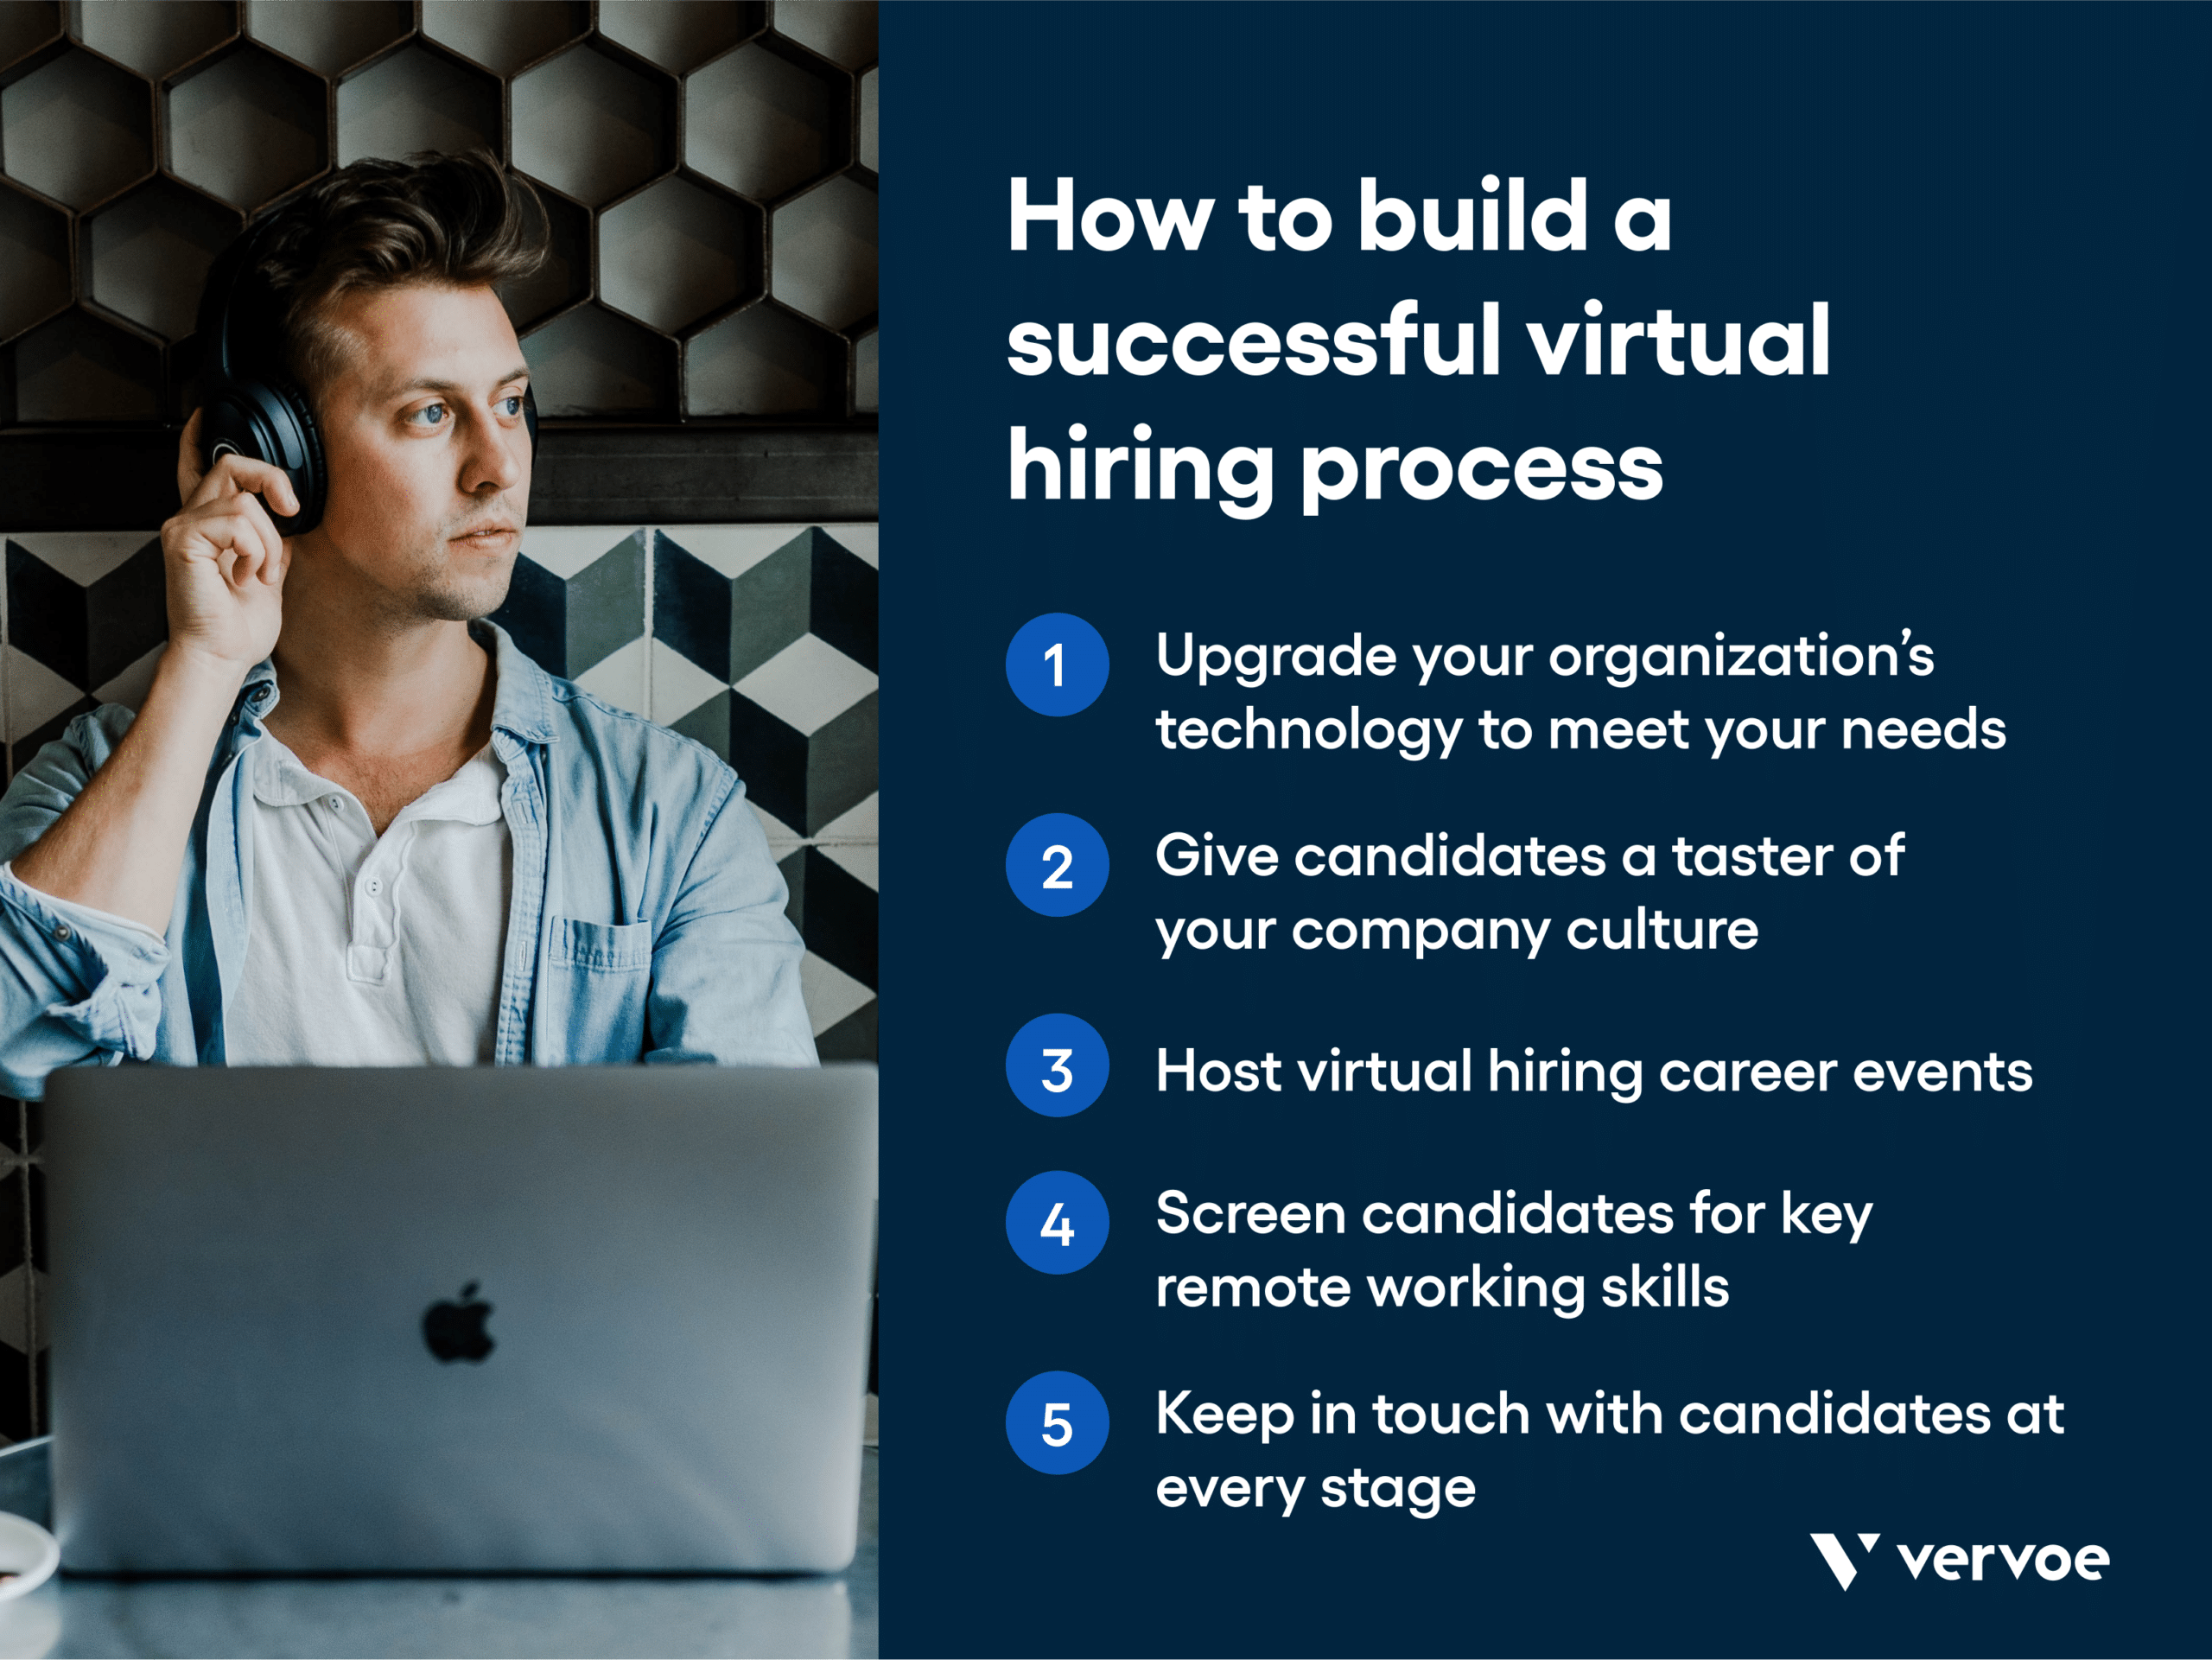 Five steps to building a successful virtual hiring process